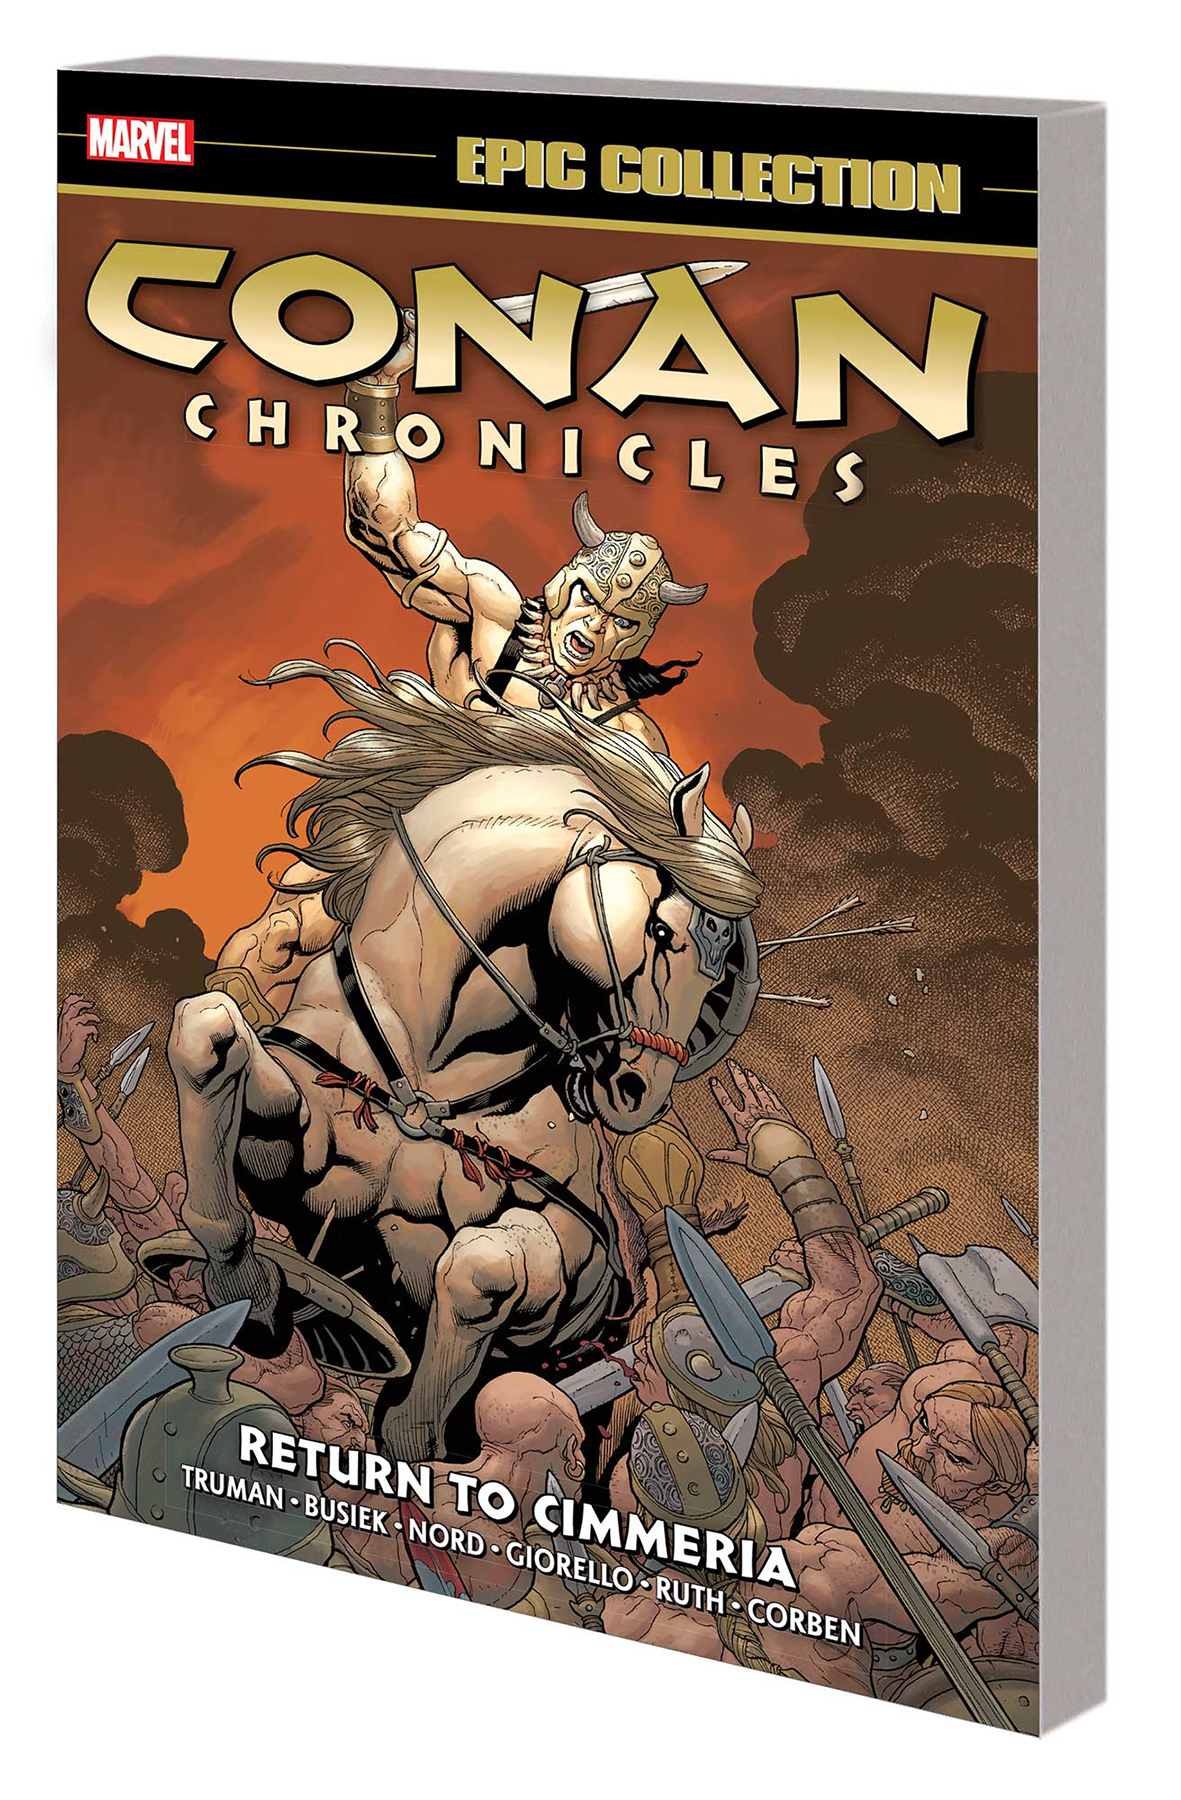 CONAN CHRONICLES EPIC COLLECTION TP RETURN TO CIMMERIA